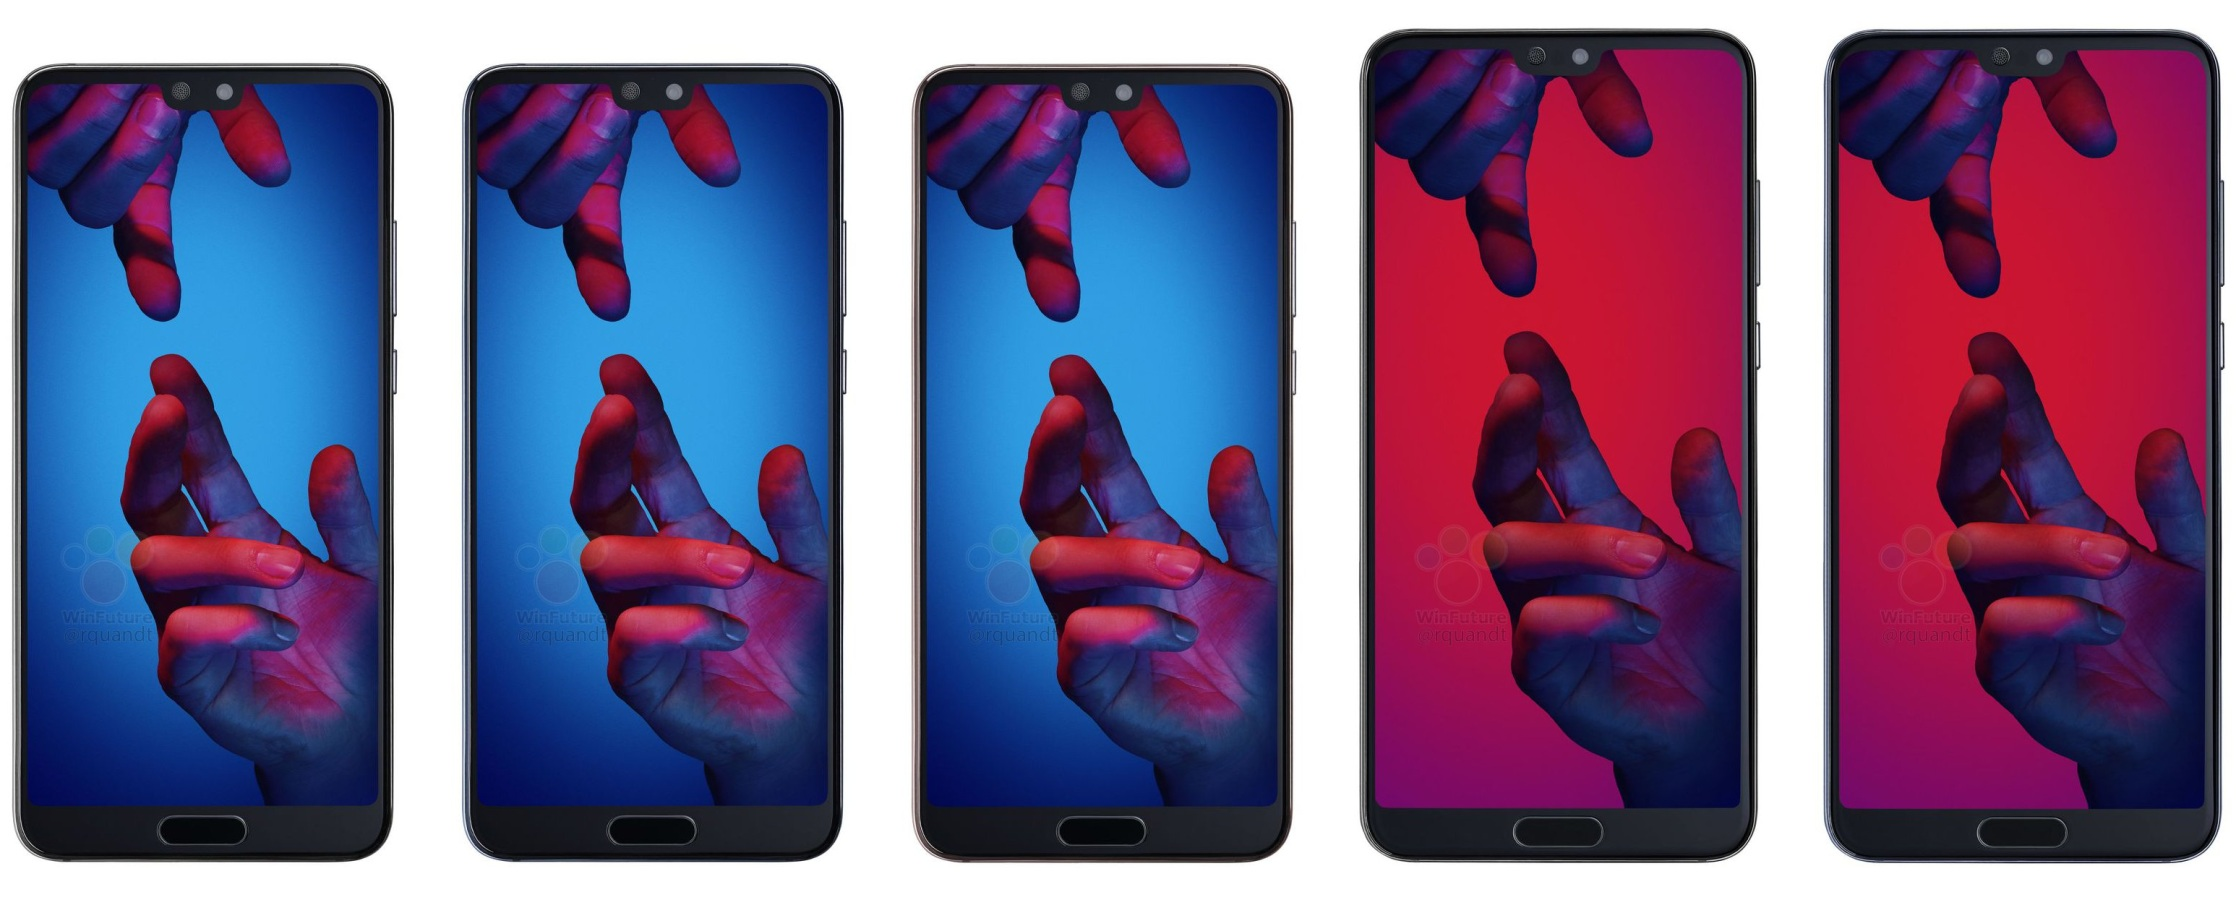 Huawei P20 to cost €679, P20 Pro to be €899 in Europe, latest leak reveals